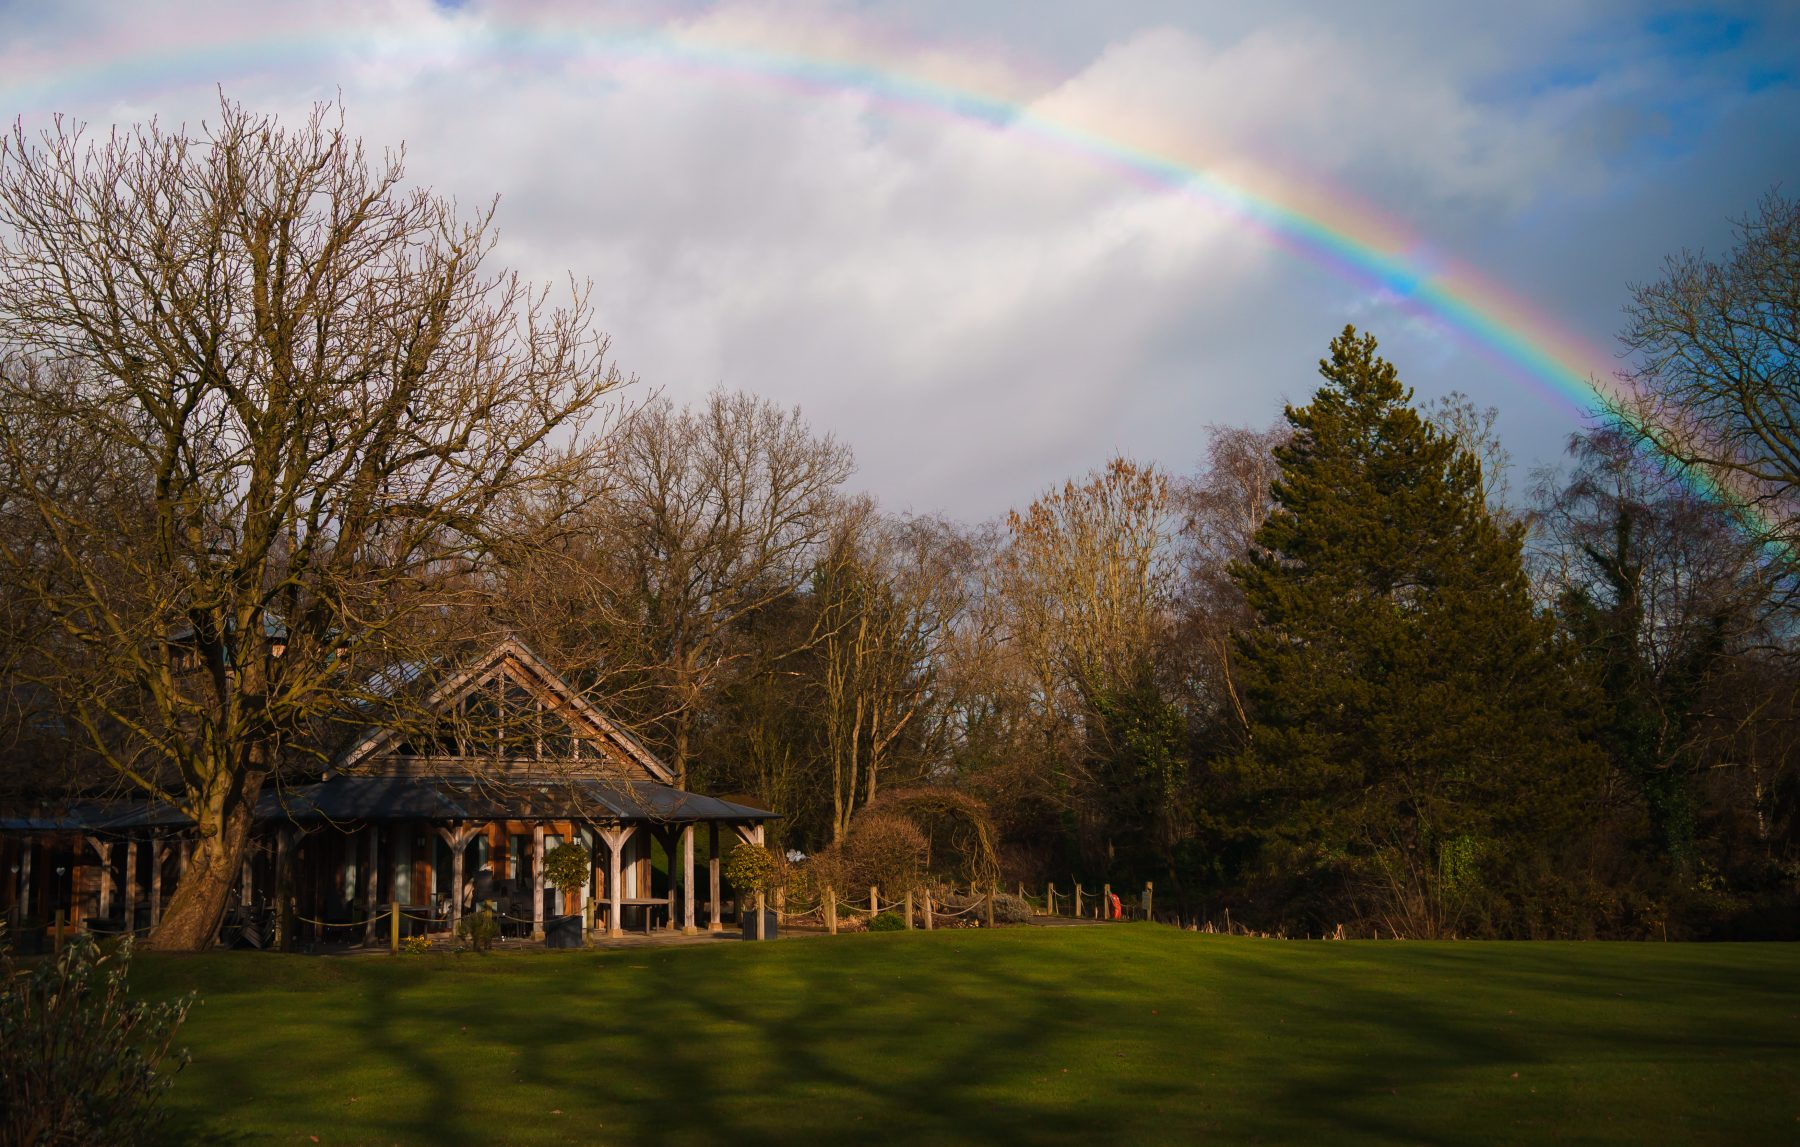 A rainbow over the The Oak Tree of Peover in Knutsford